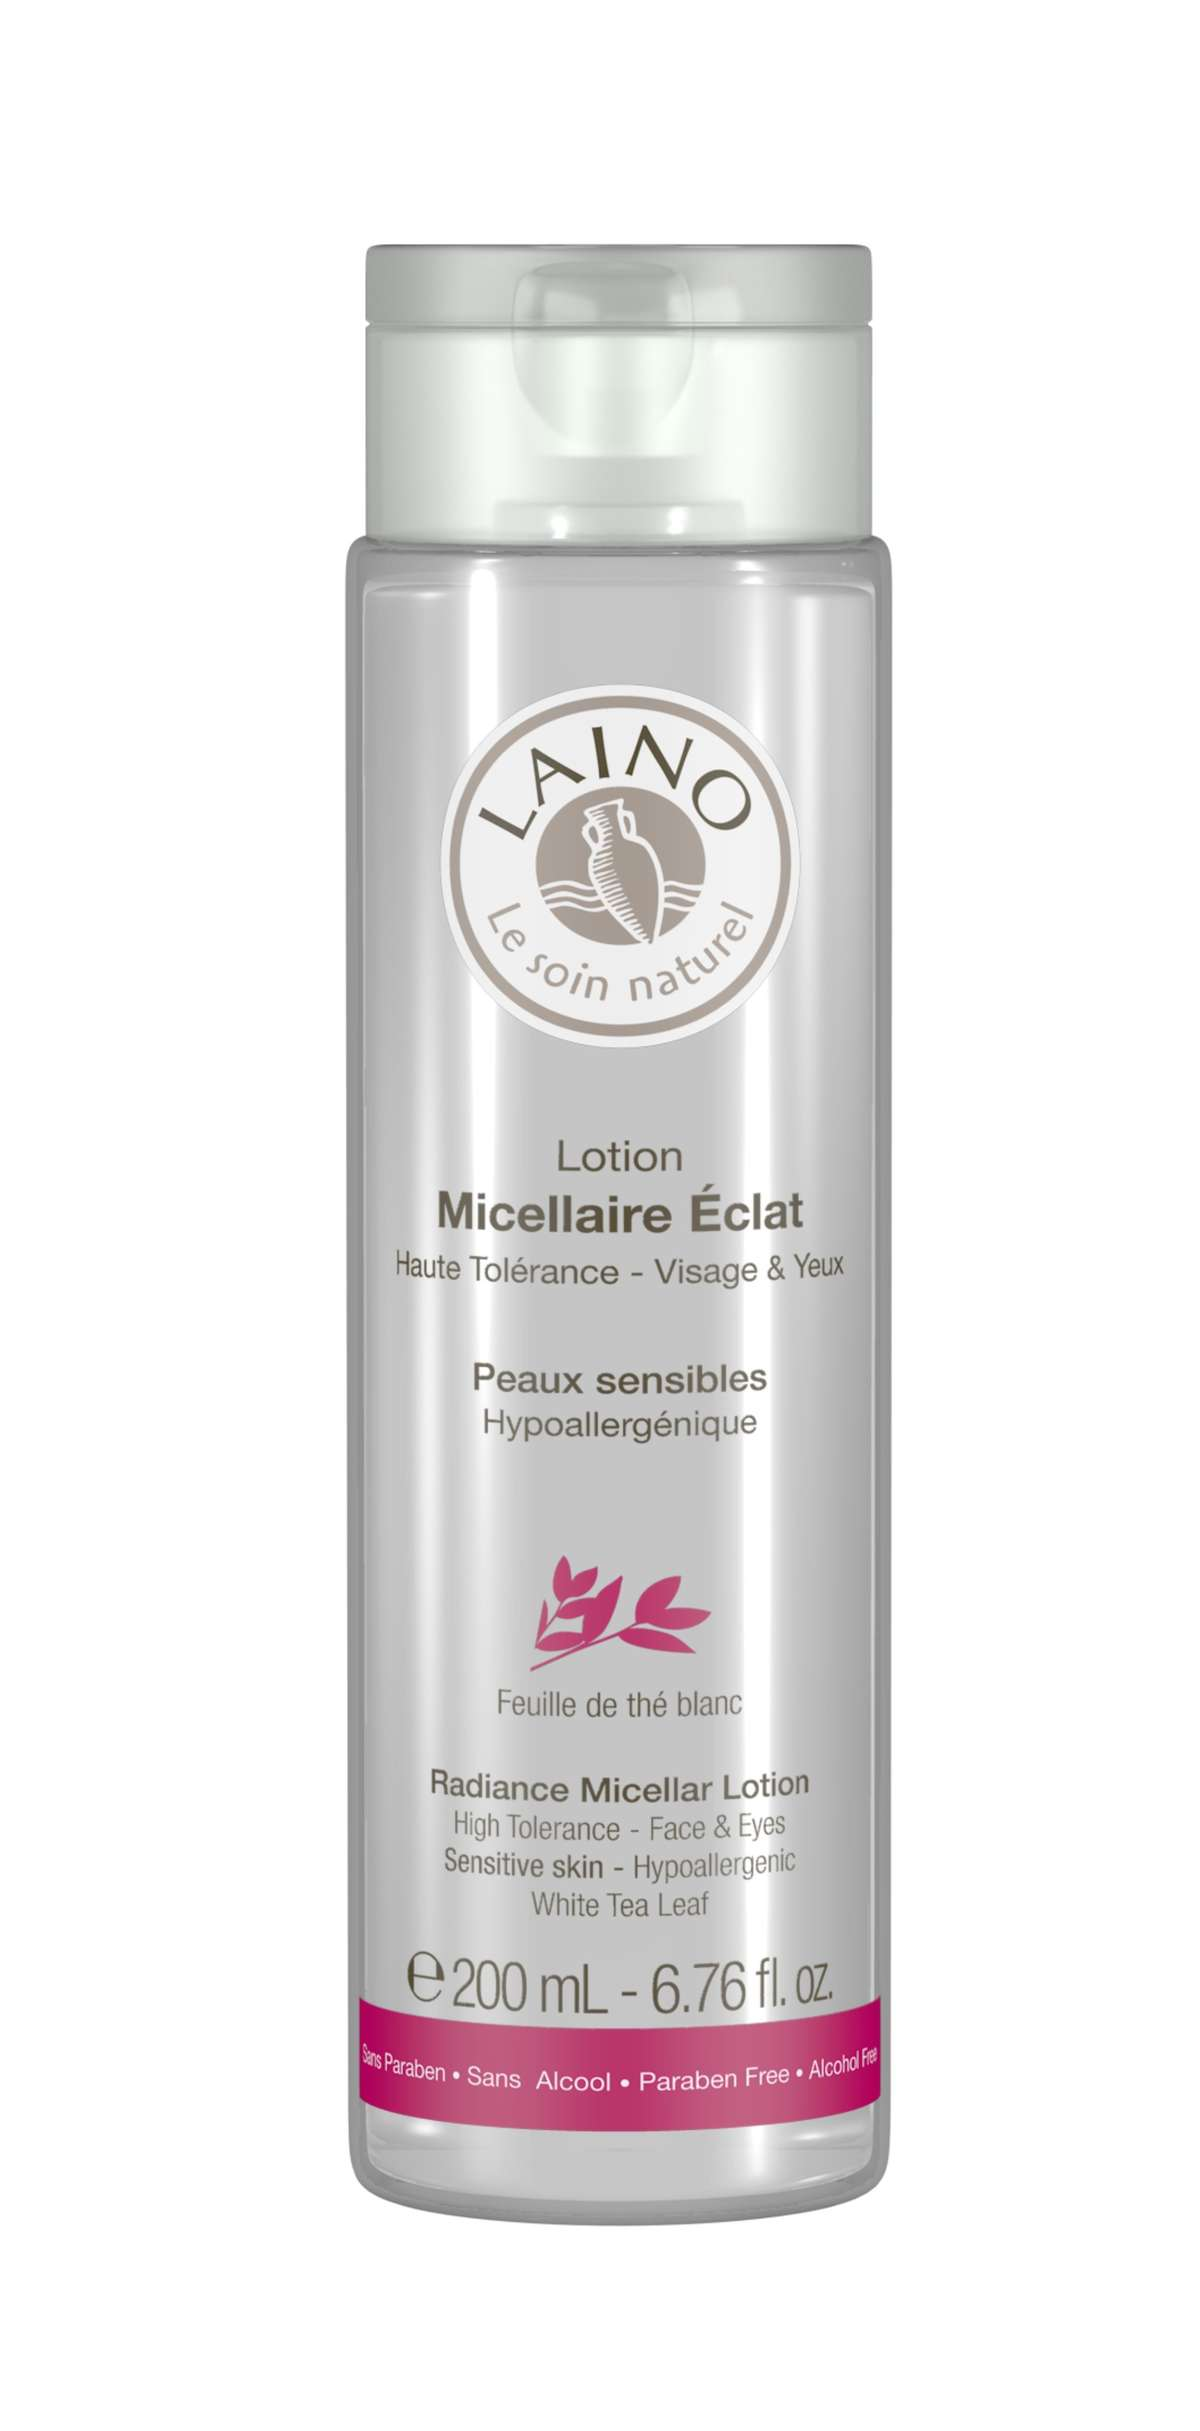 Radiance micellar lotion